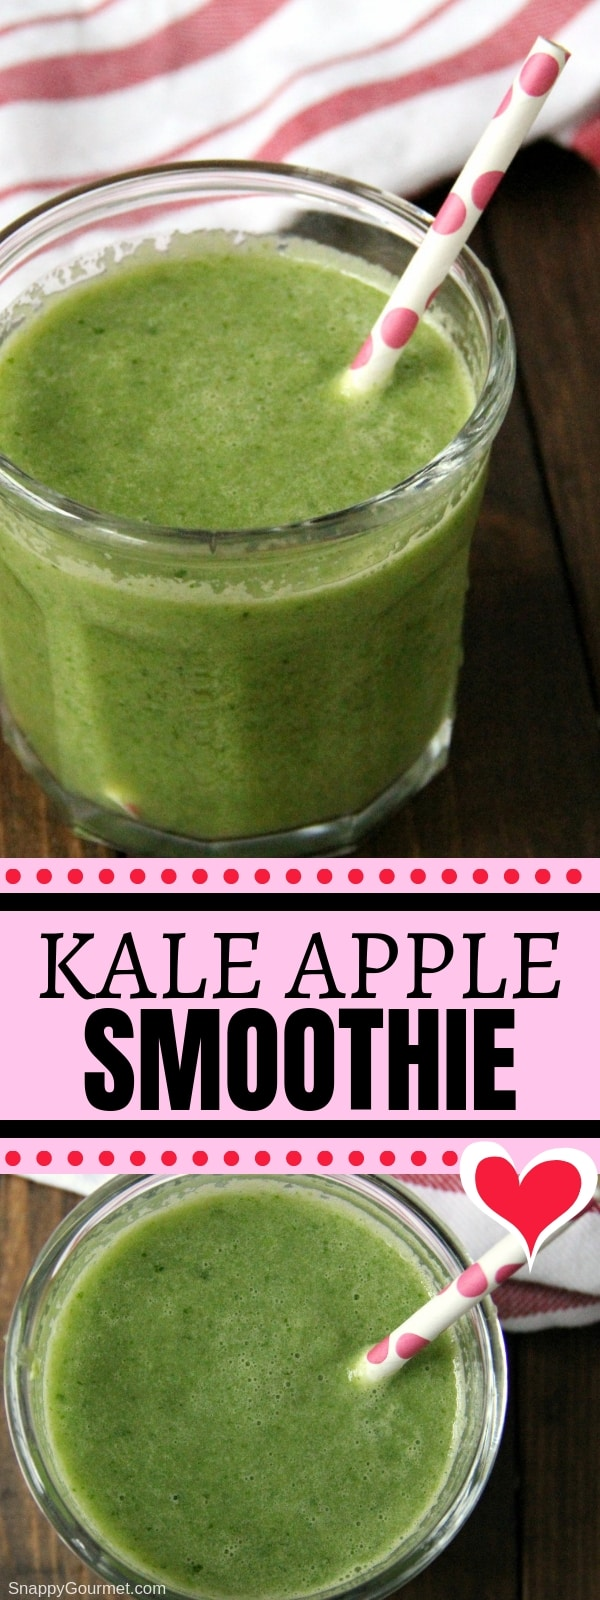 Kale Apple Smoothie collage